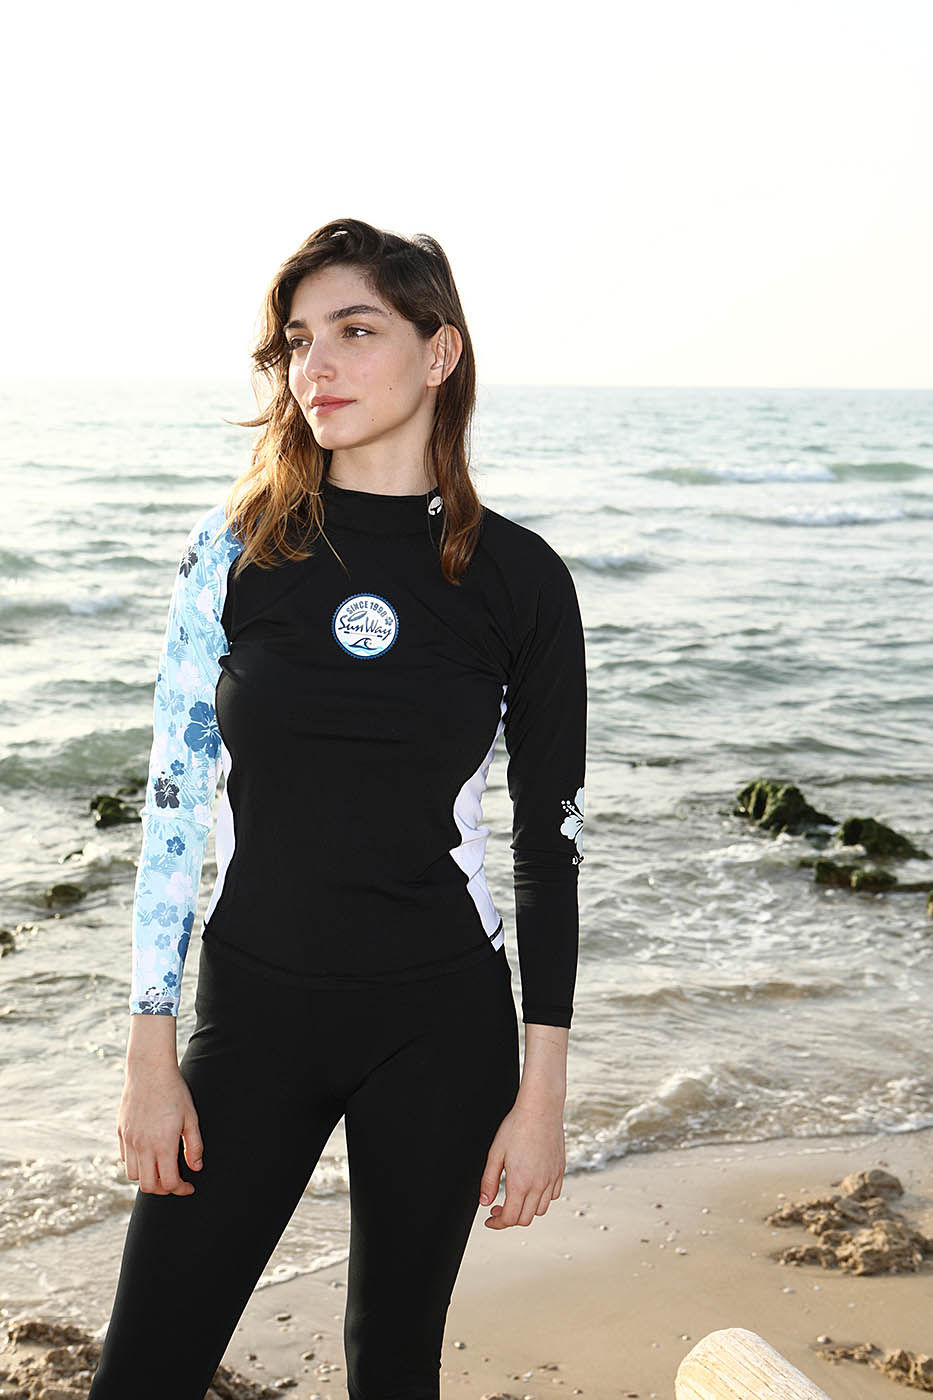 5d948d7c8ab7b Home Women Shop by Products UV Protective Swimwear Women s Long Sleeves  Rashguard UV Swim Shirt 001L